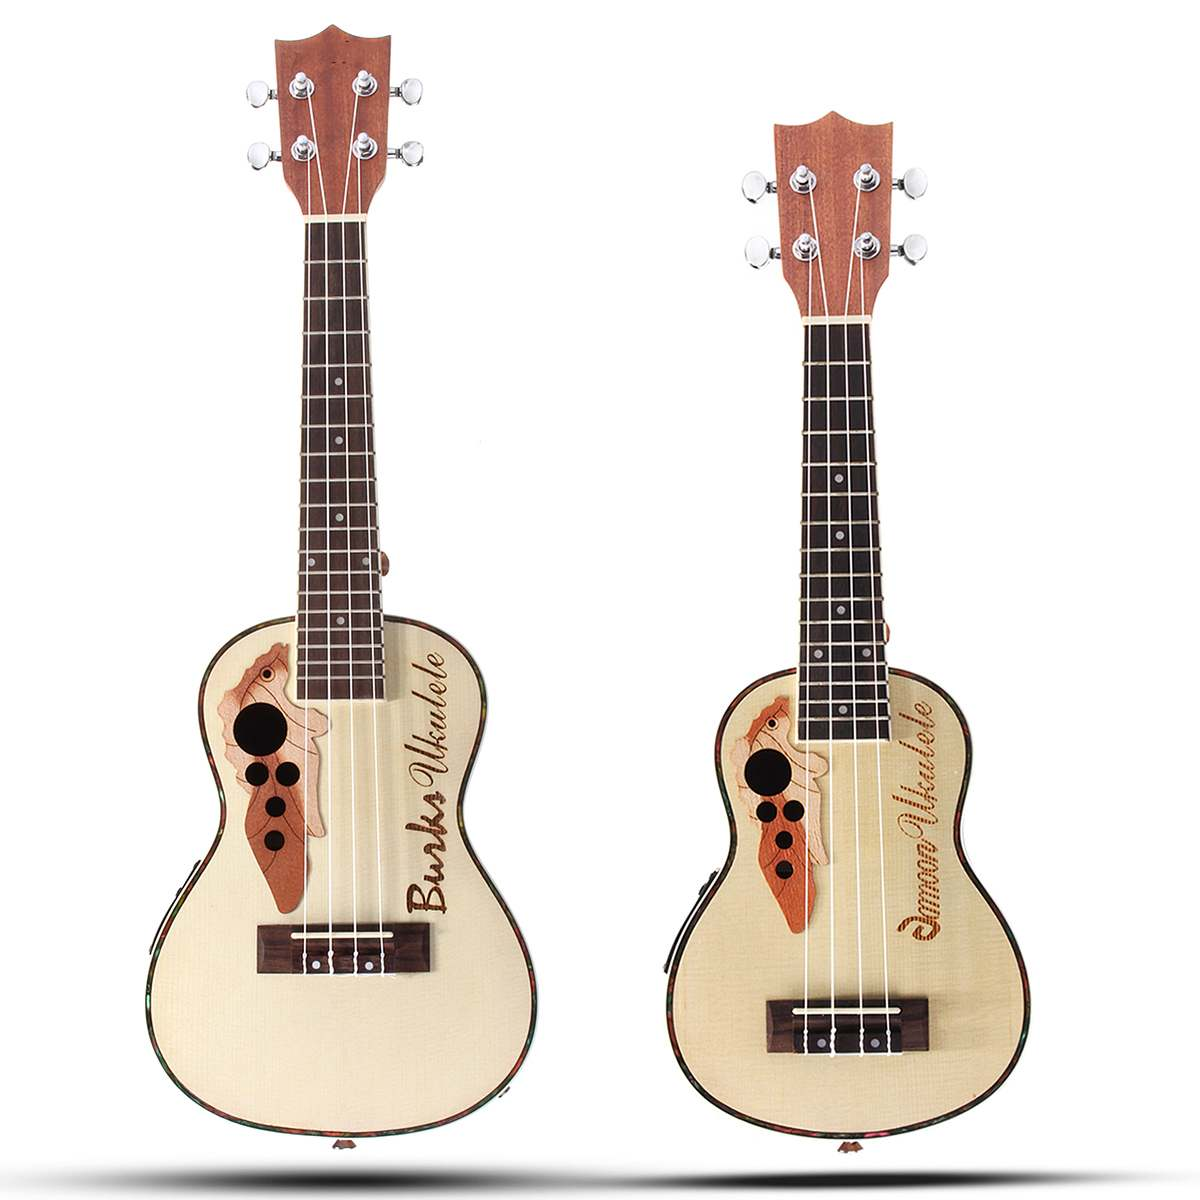 21 23 Inch 4 Strings Concert Ukulele Electric Acoustic Ukulele Hawaii Guitar Spruce Portable Mini Guitar Instrumentos Musicais